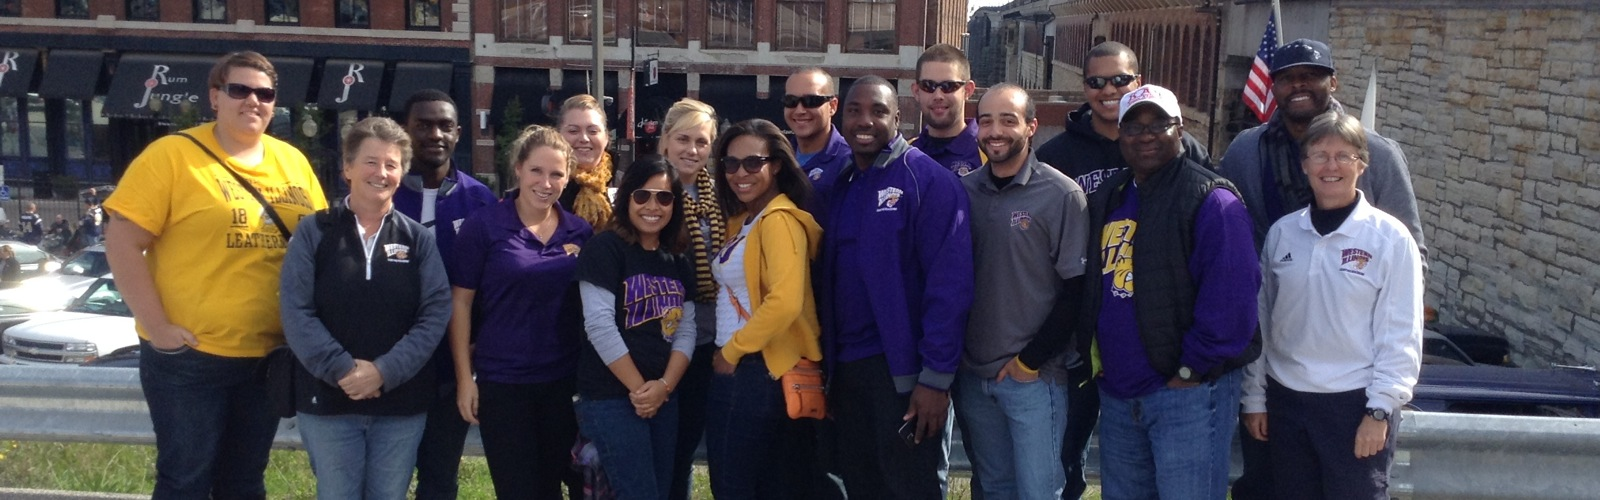 Sport Management Students attend St. Louis Rams Game